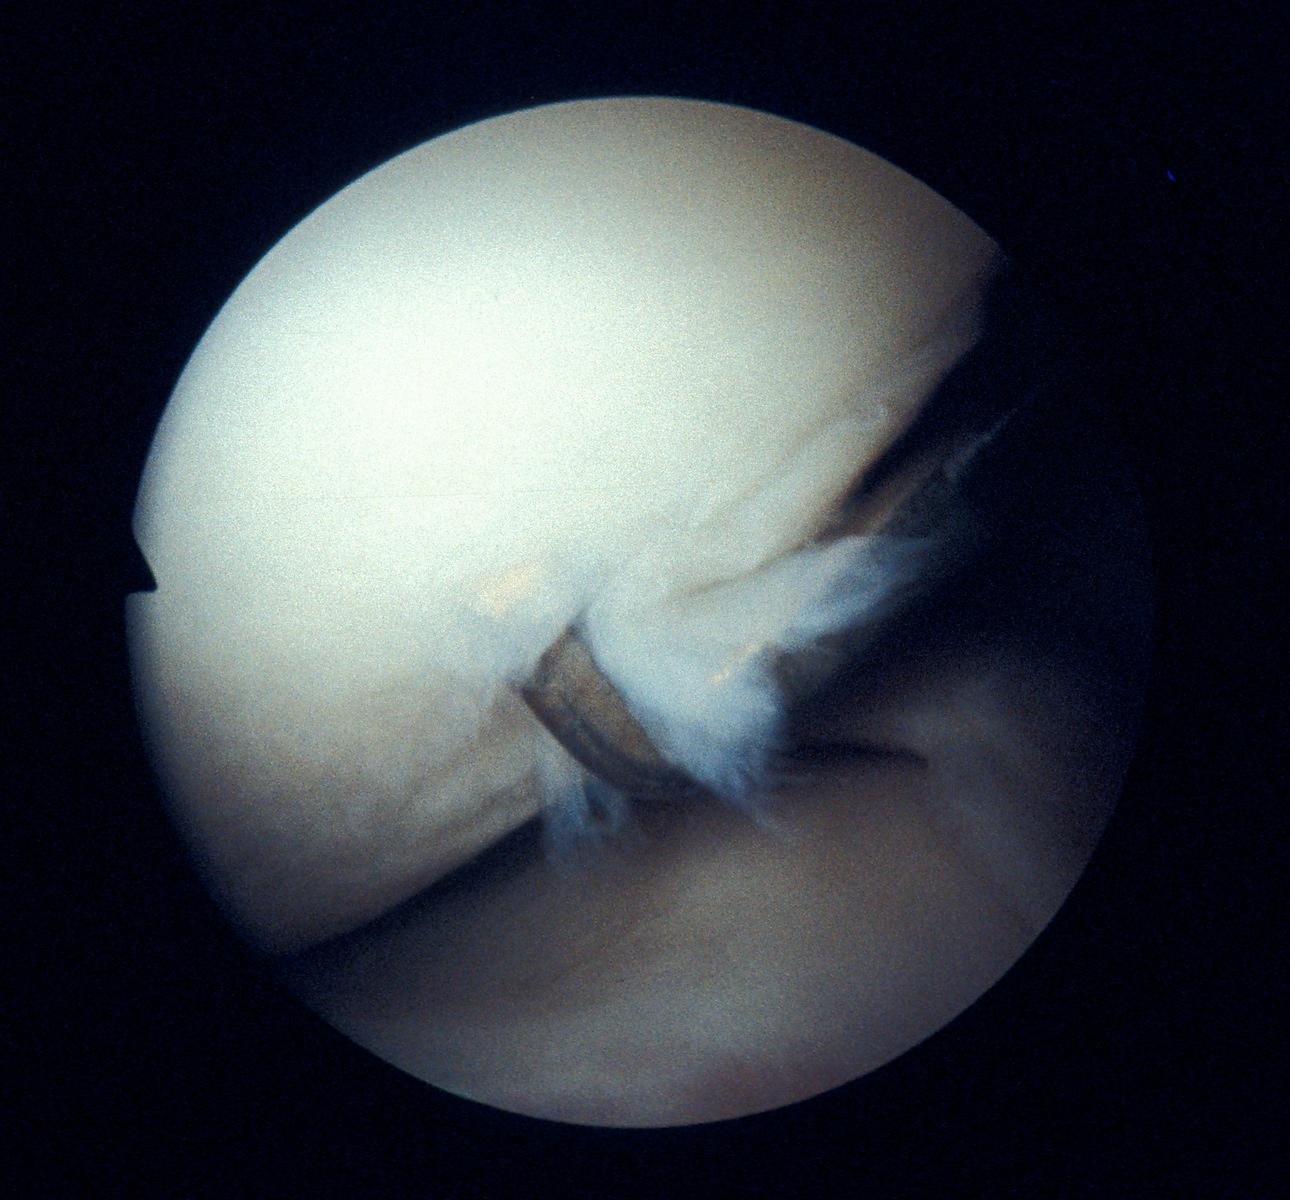 Osteoartritis of the femoral condyle showing fibrillation, softening and damage to the chondral surface. Stage III